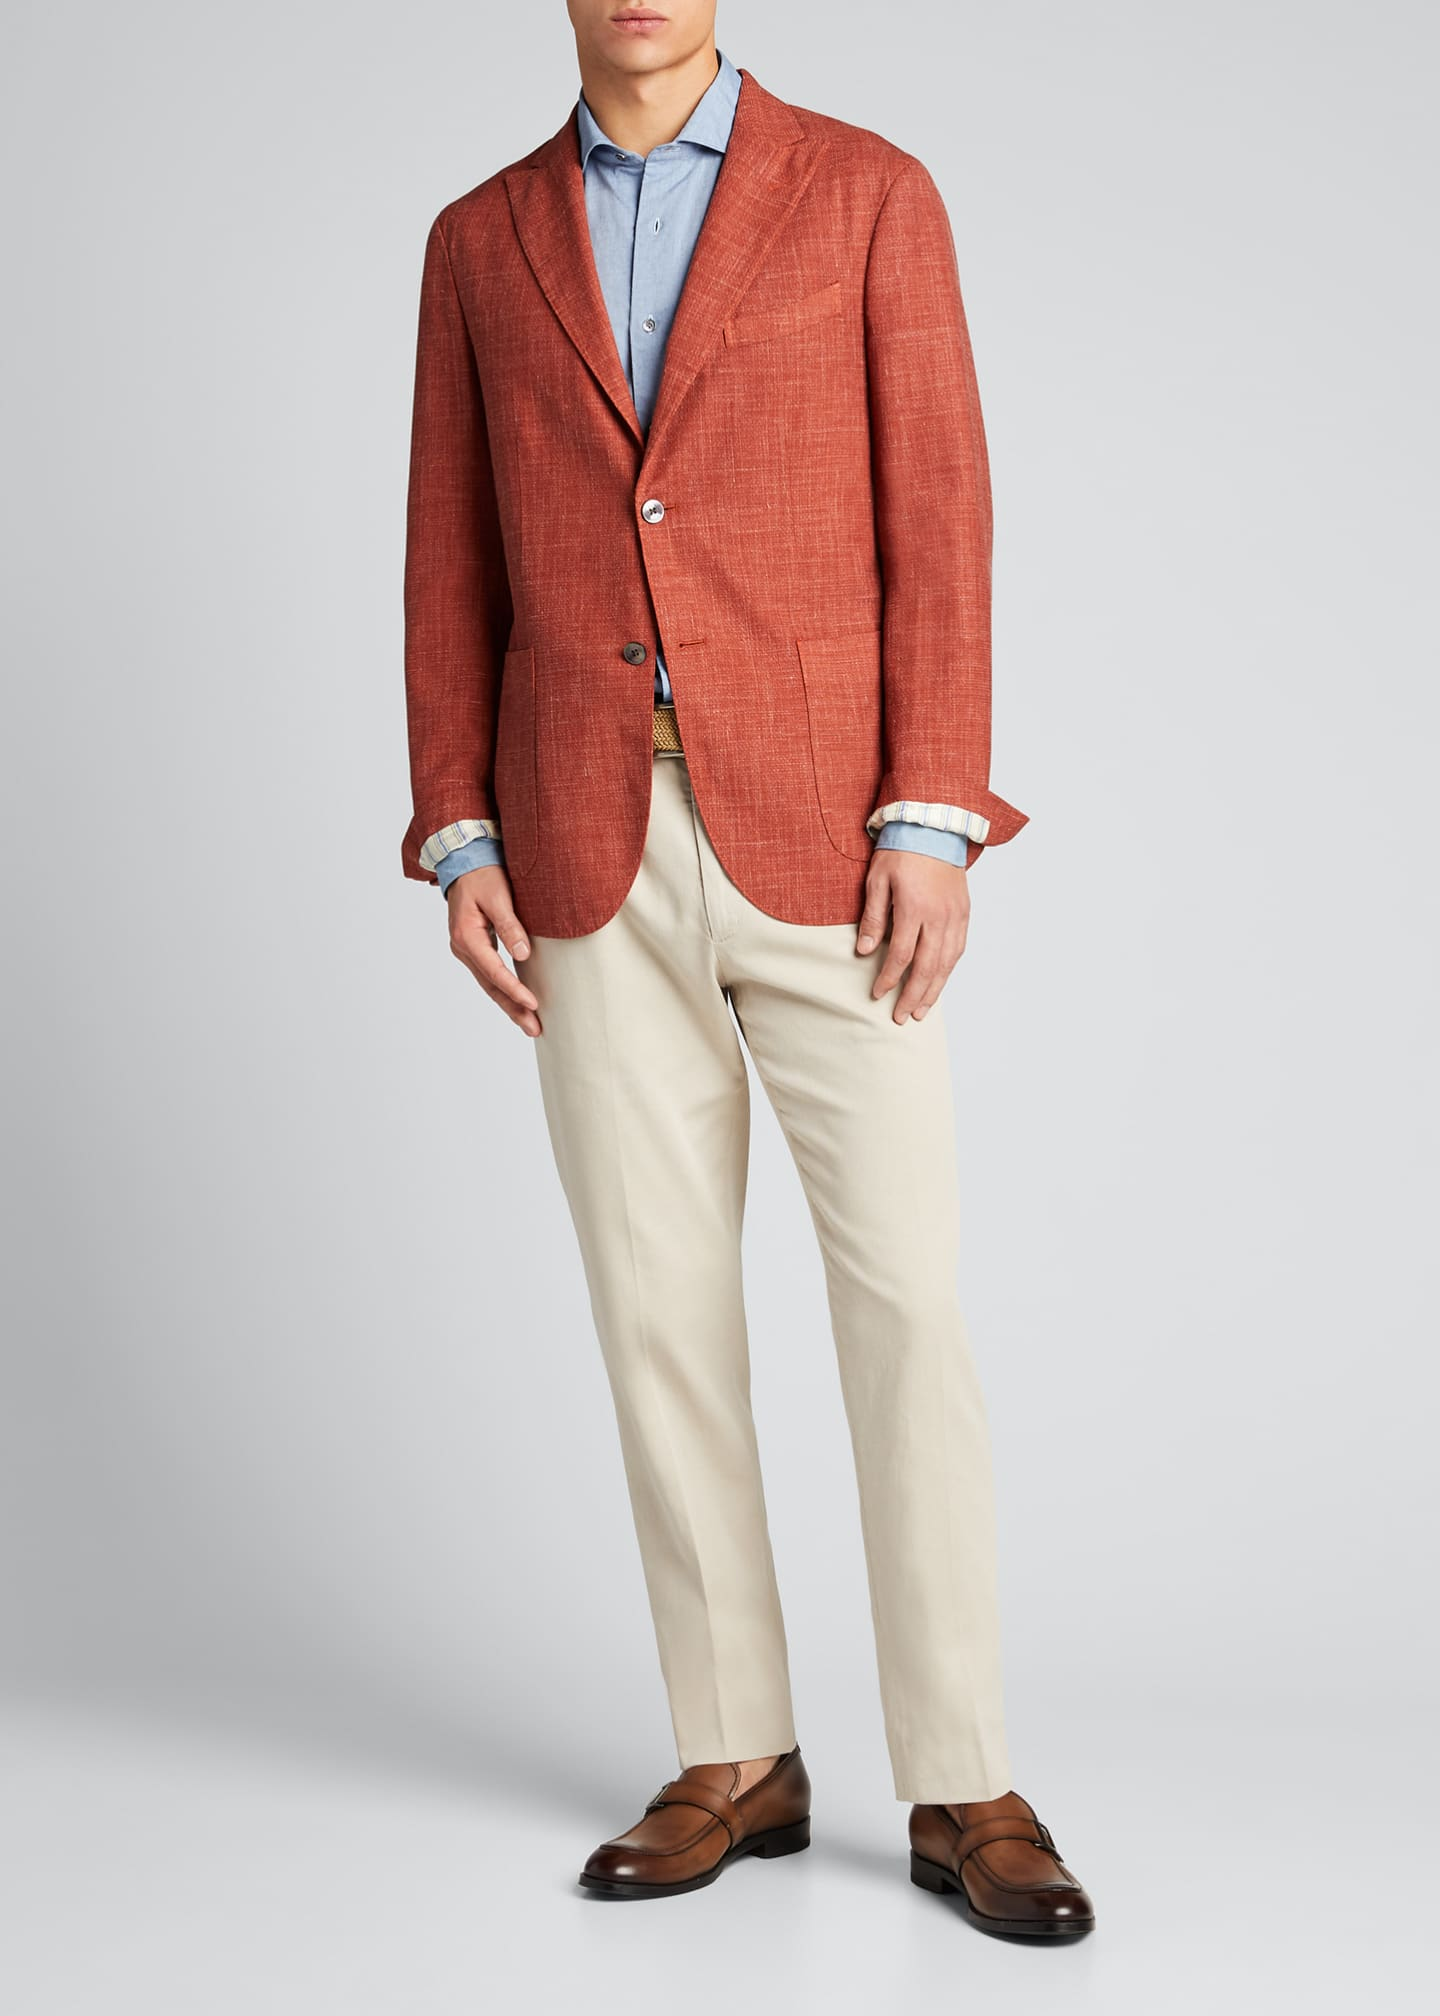 Men's Melange Wool-Blend Blazer